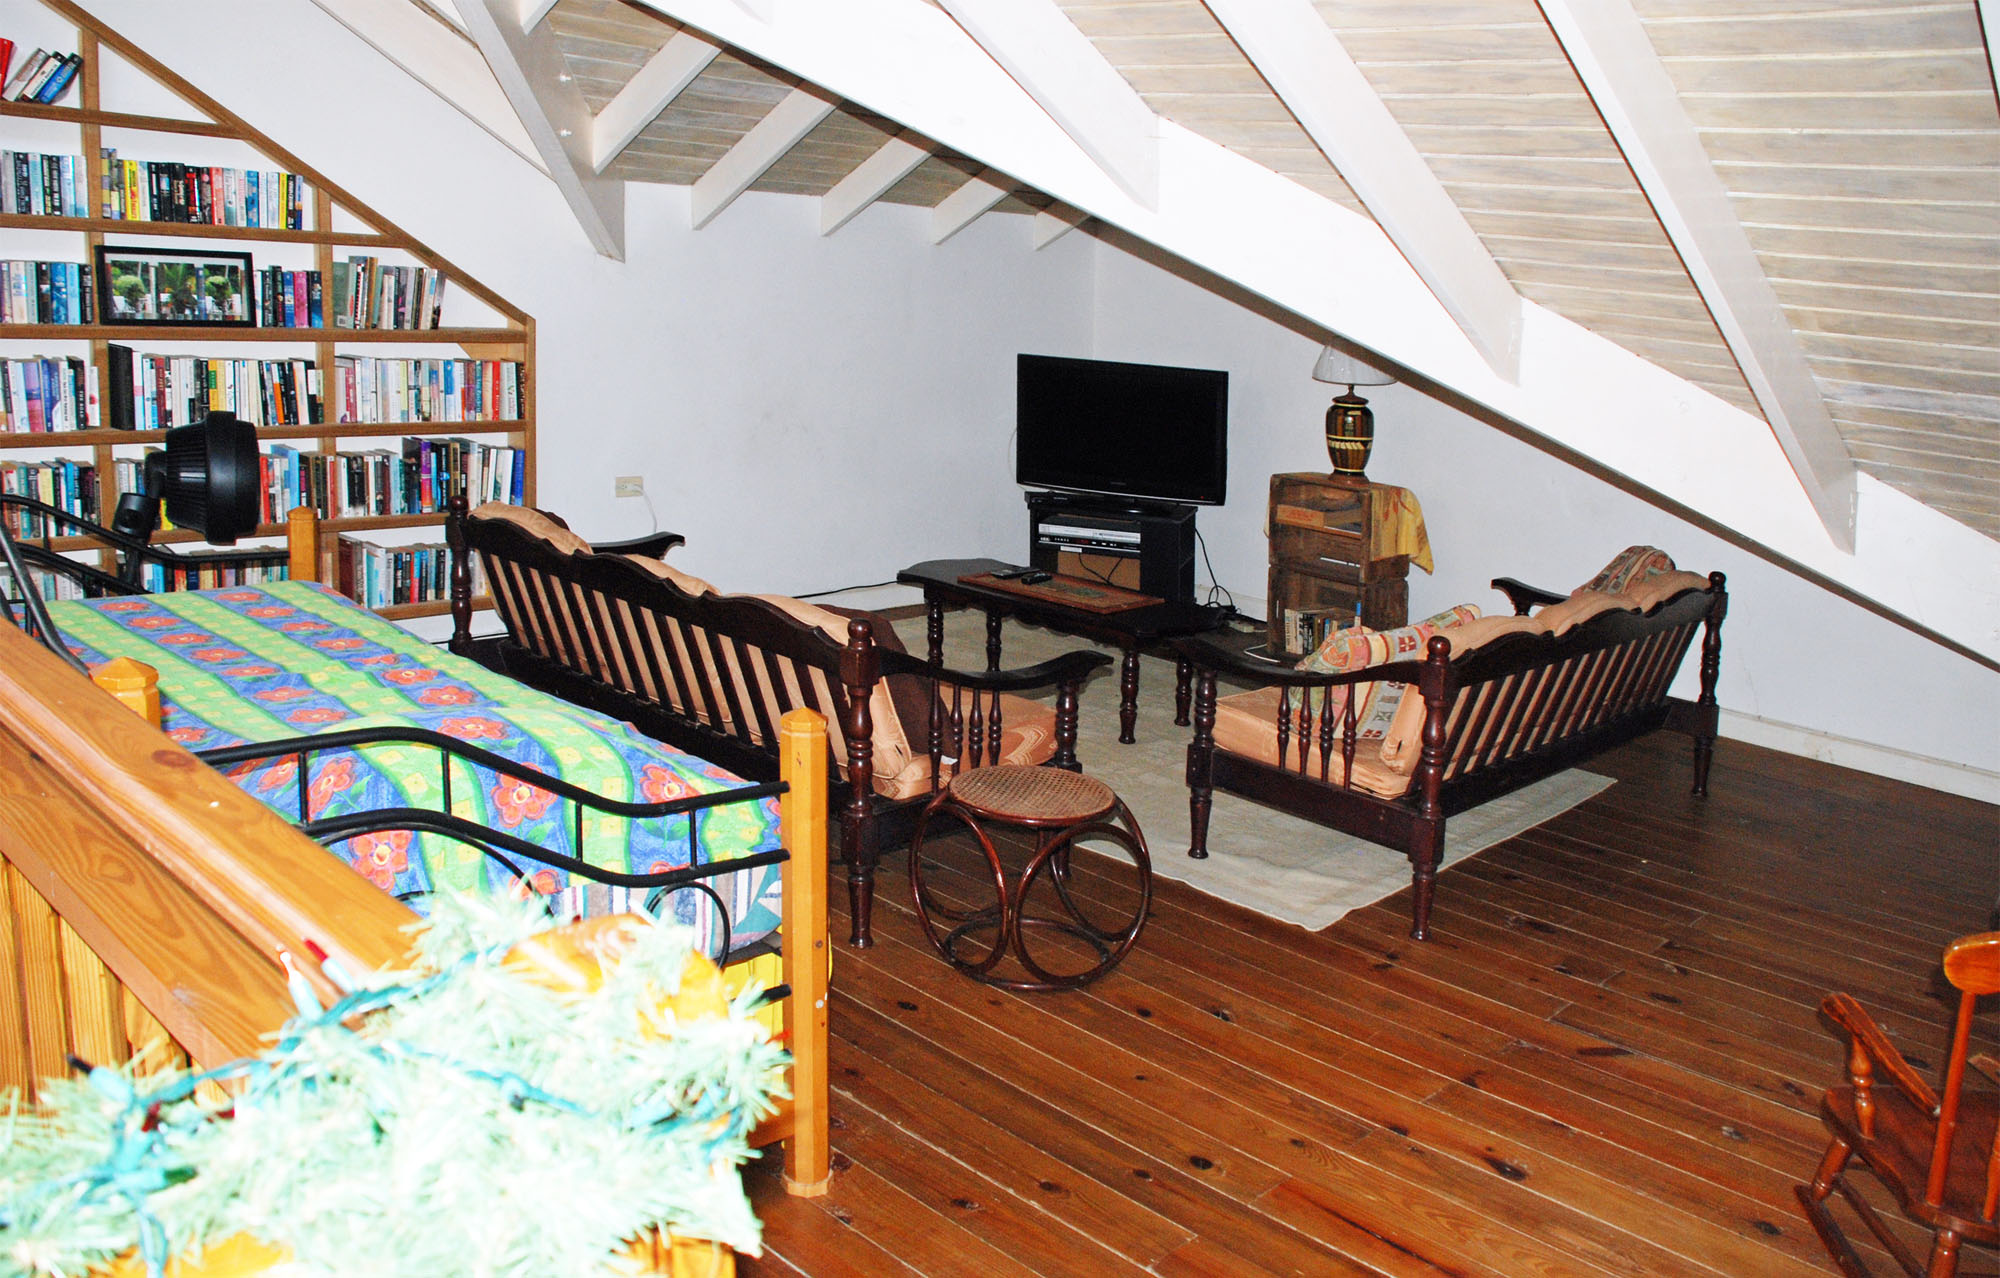 SOL Y MAR VILLA, TOBAGO W.I. Library loft with large selection of books on two walls, TV, and daybed